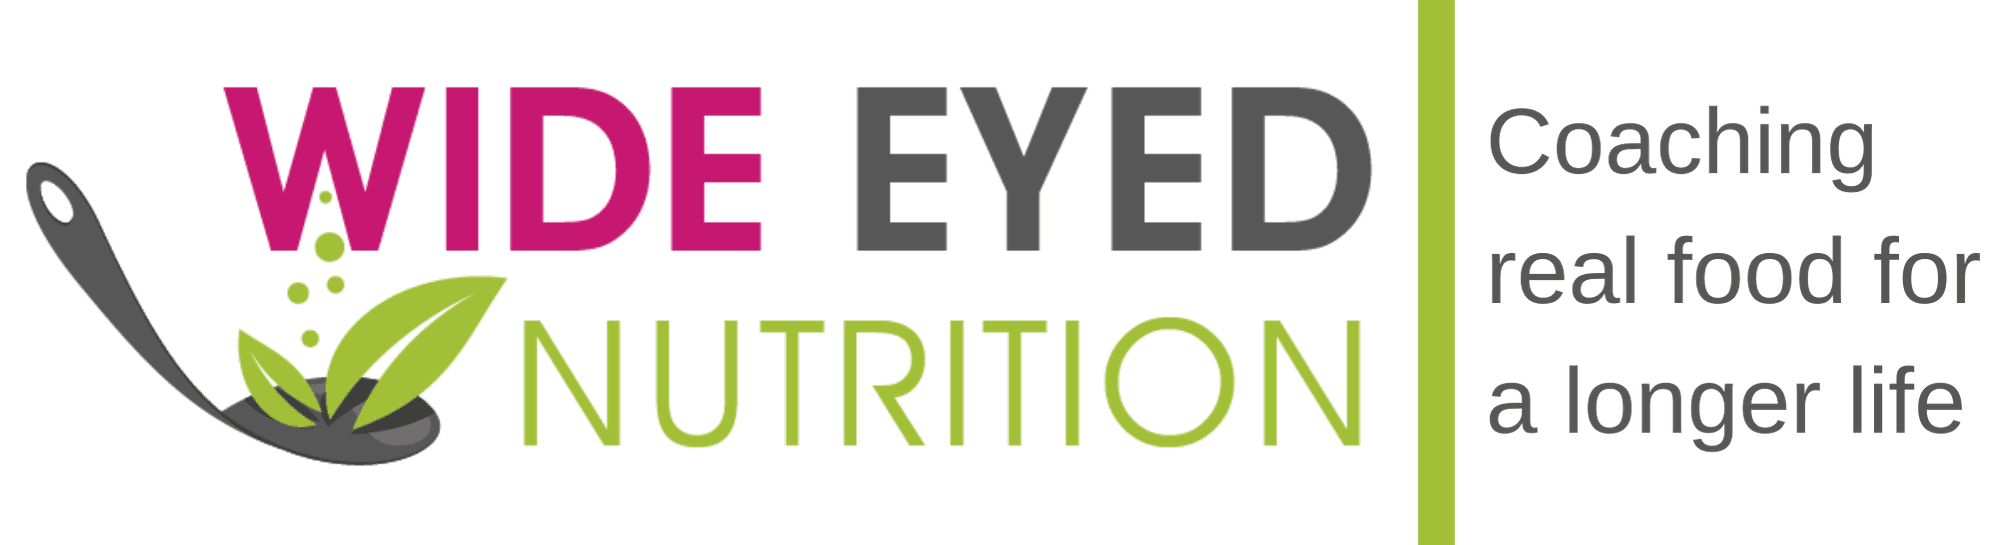 Wide Eyed Nutrition Coaching real food for a longer life